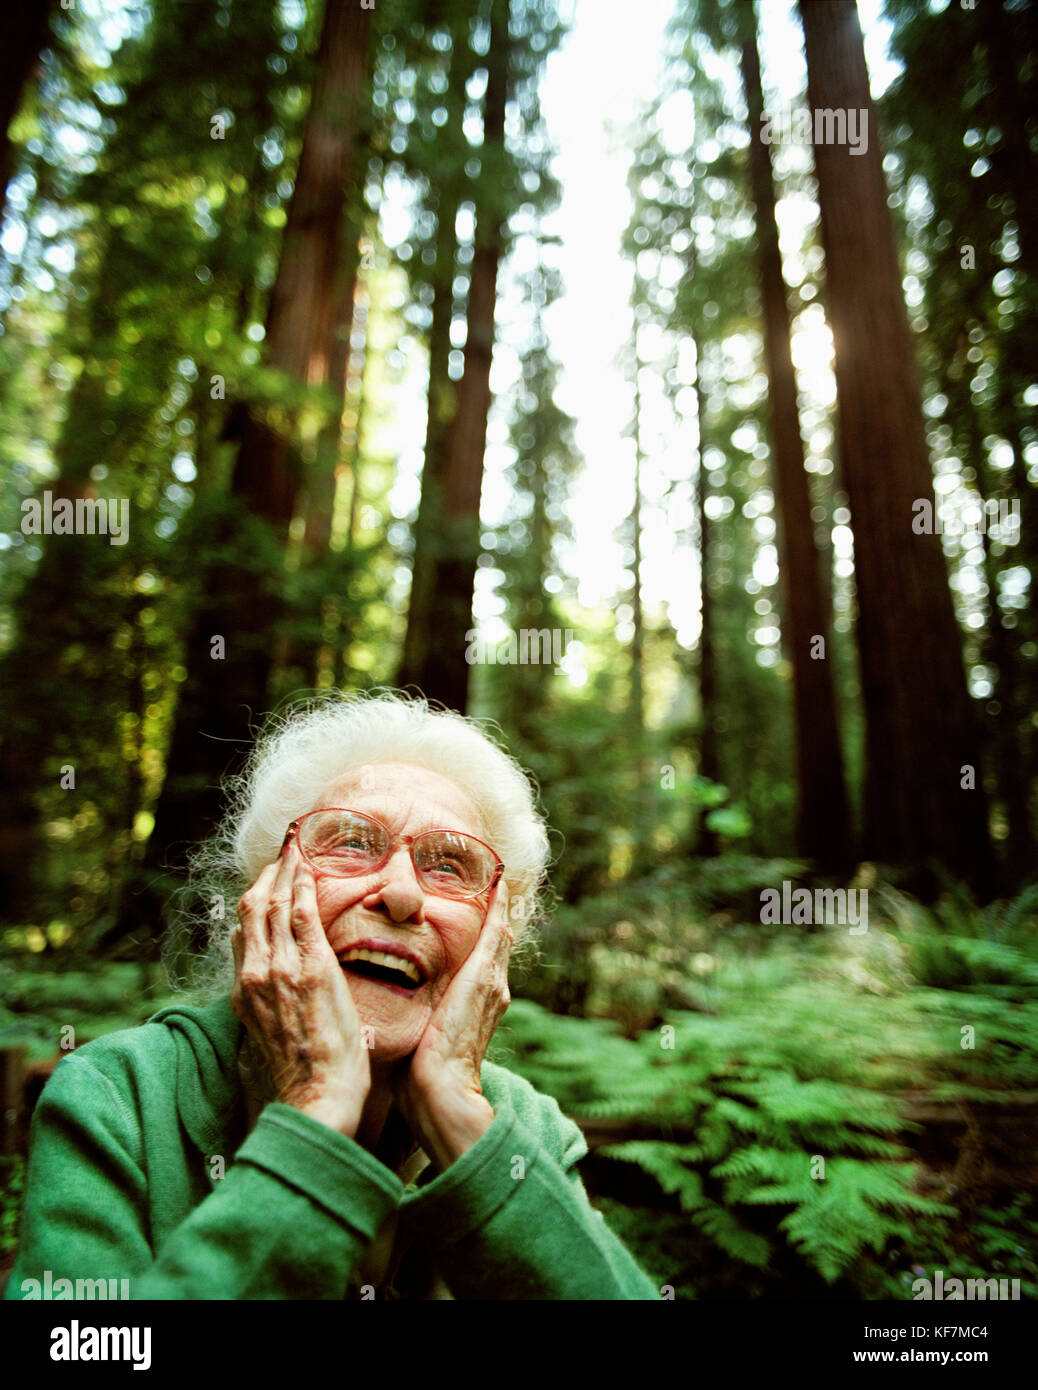 USA, California, Eureka, 103 year old woman laughing in the redwoods in Northern California - Stock Image